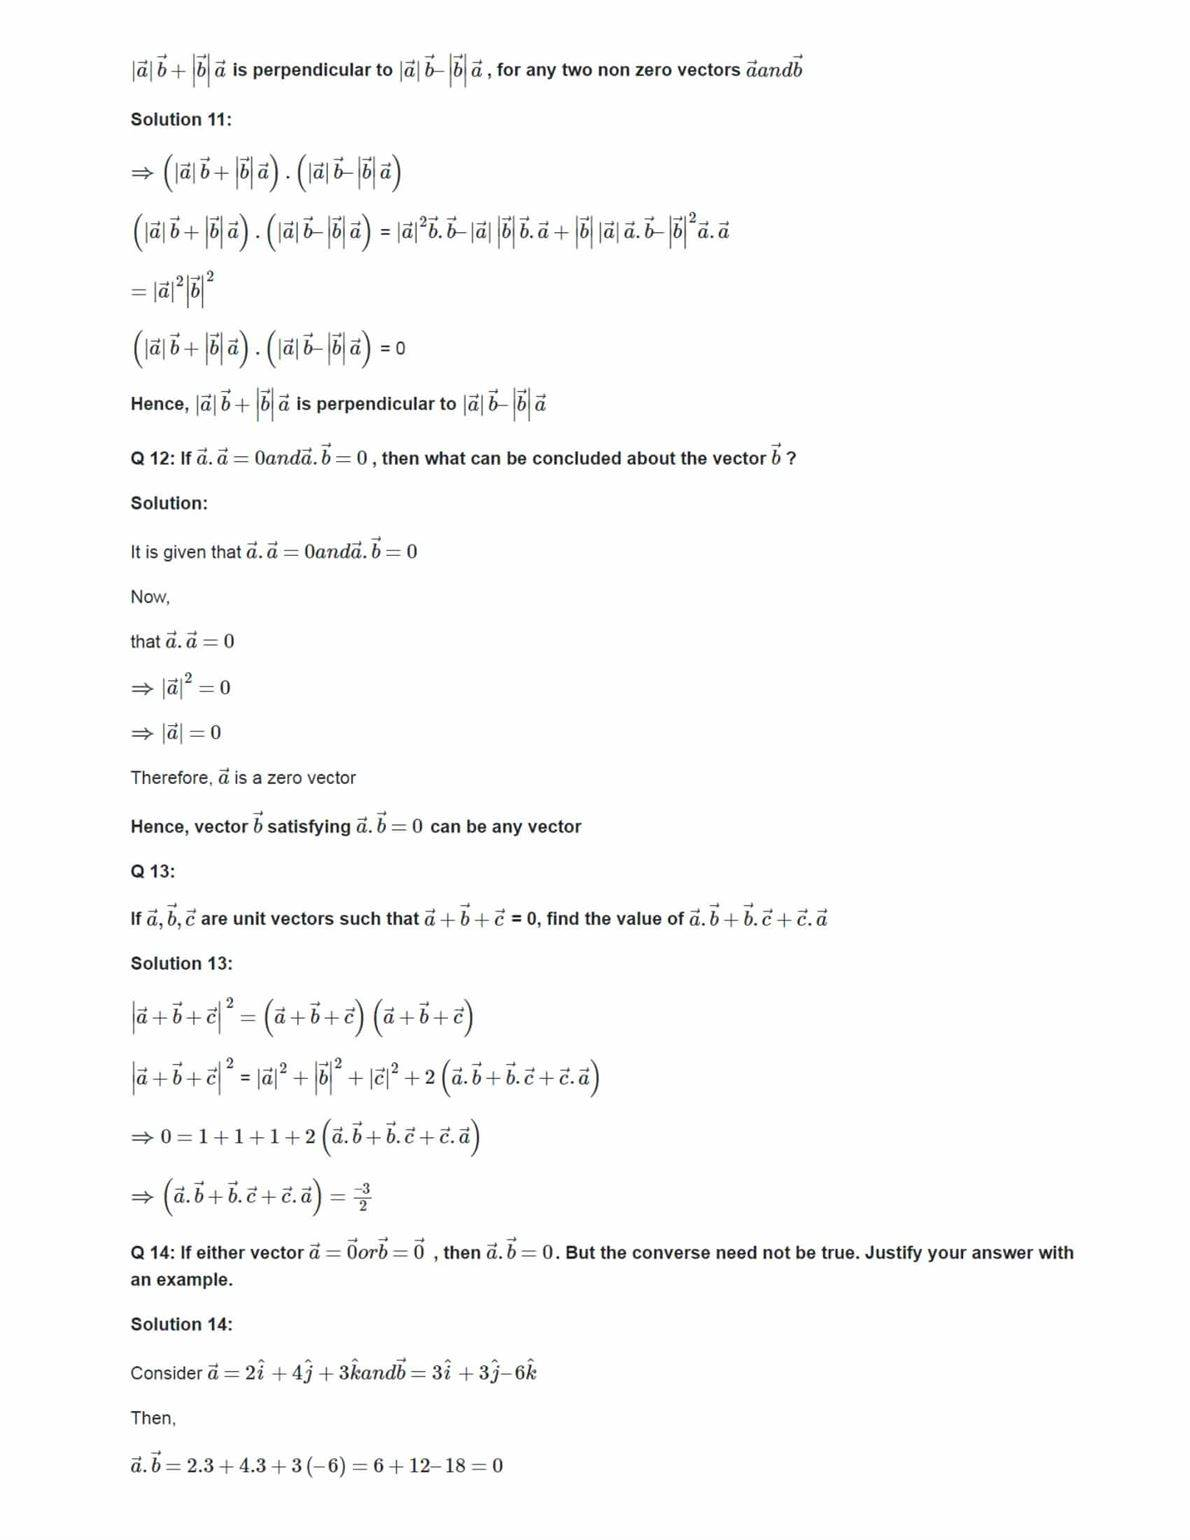 Ncert Solutions For Class 12 Maths Chapter 10 Ex 10.3